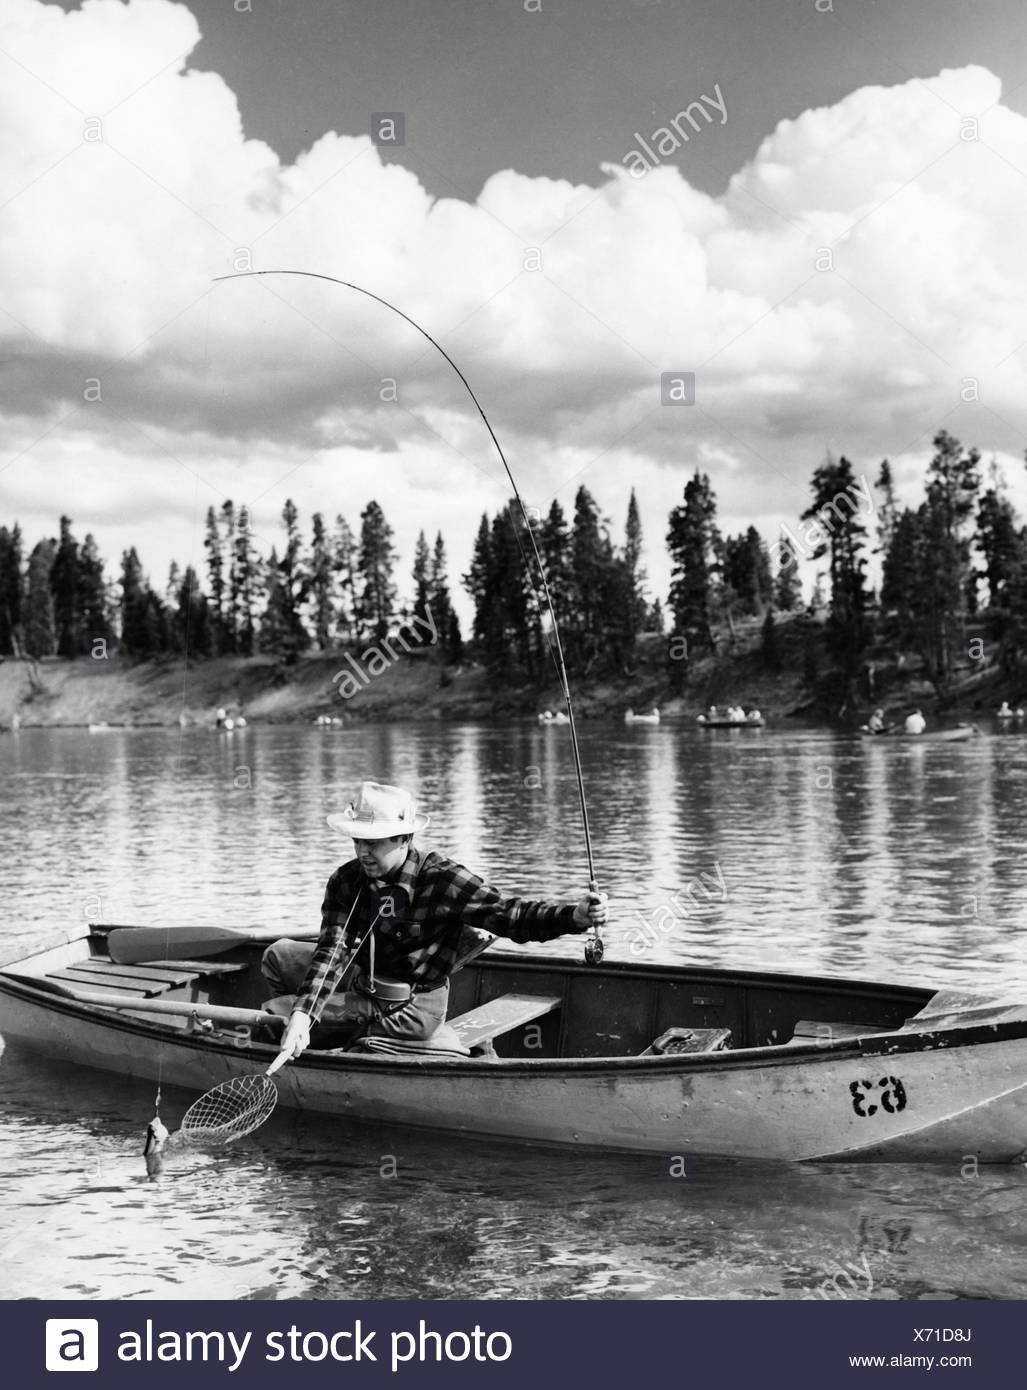 Mid adult man sitting on a rowboat and fishing in a lake - Stock Image